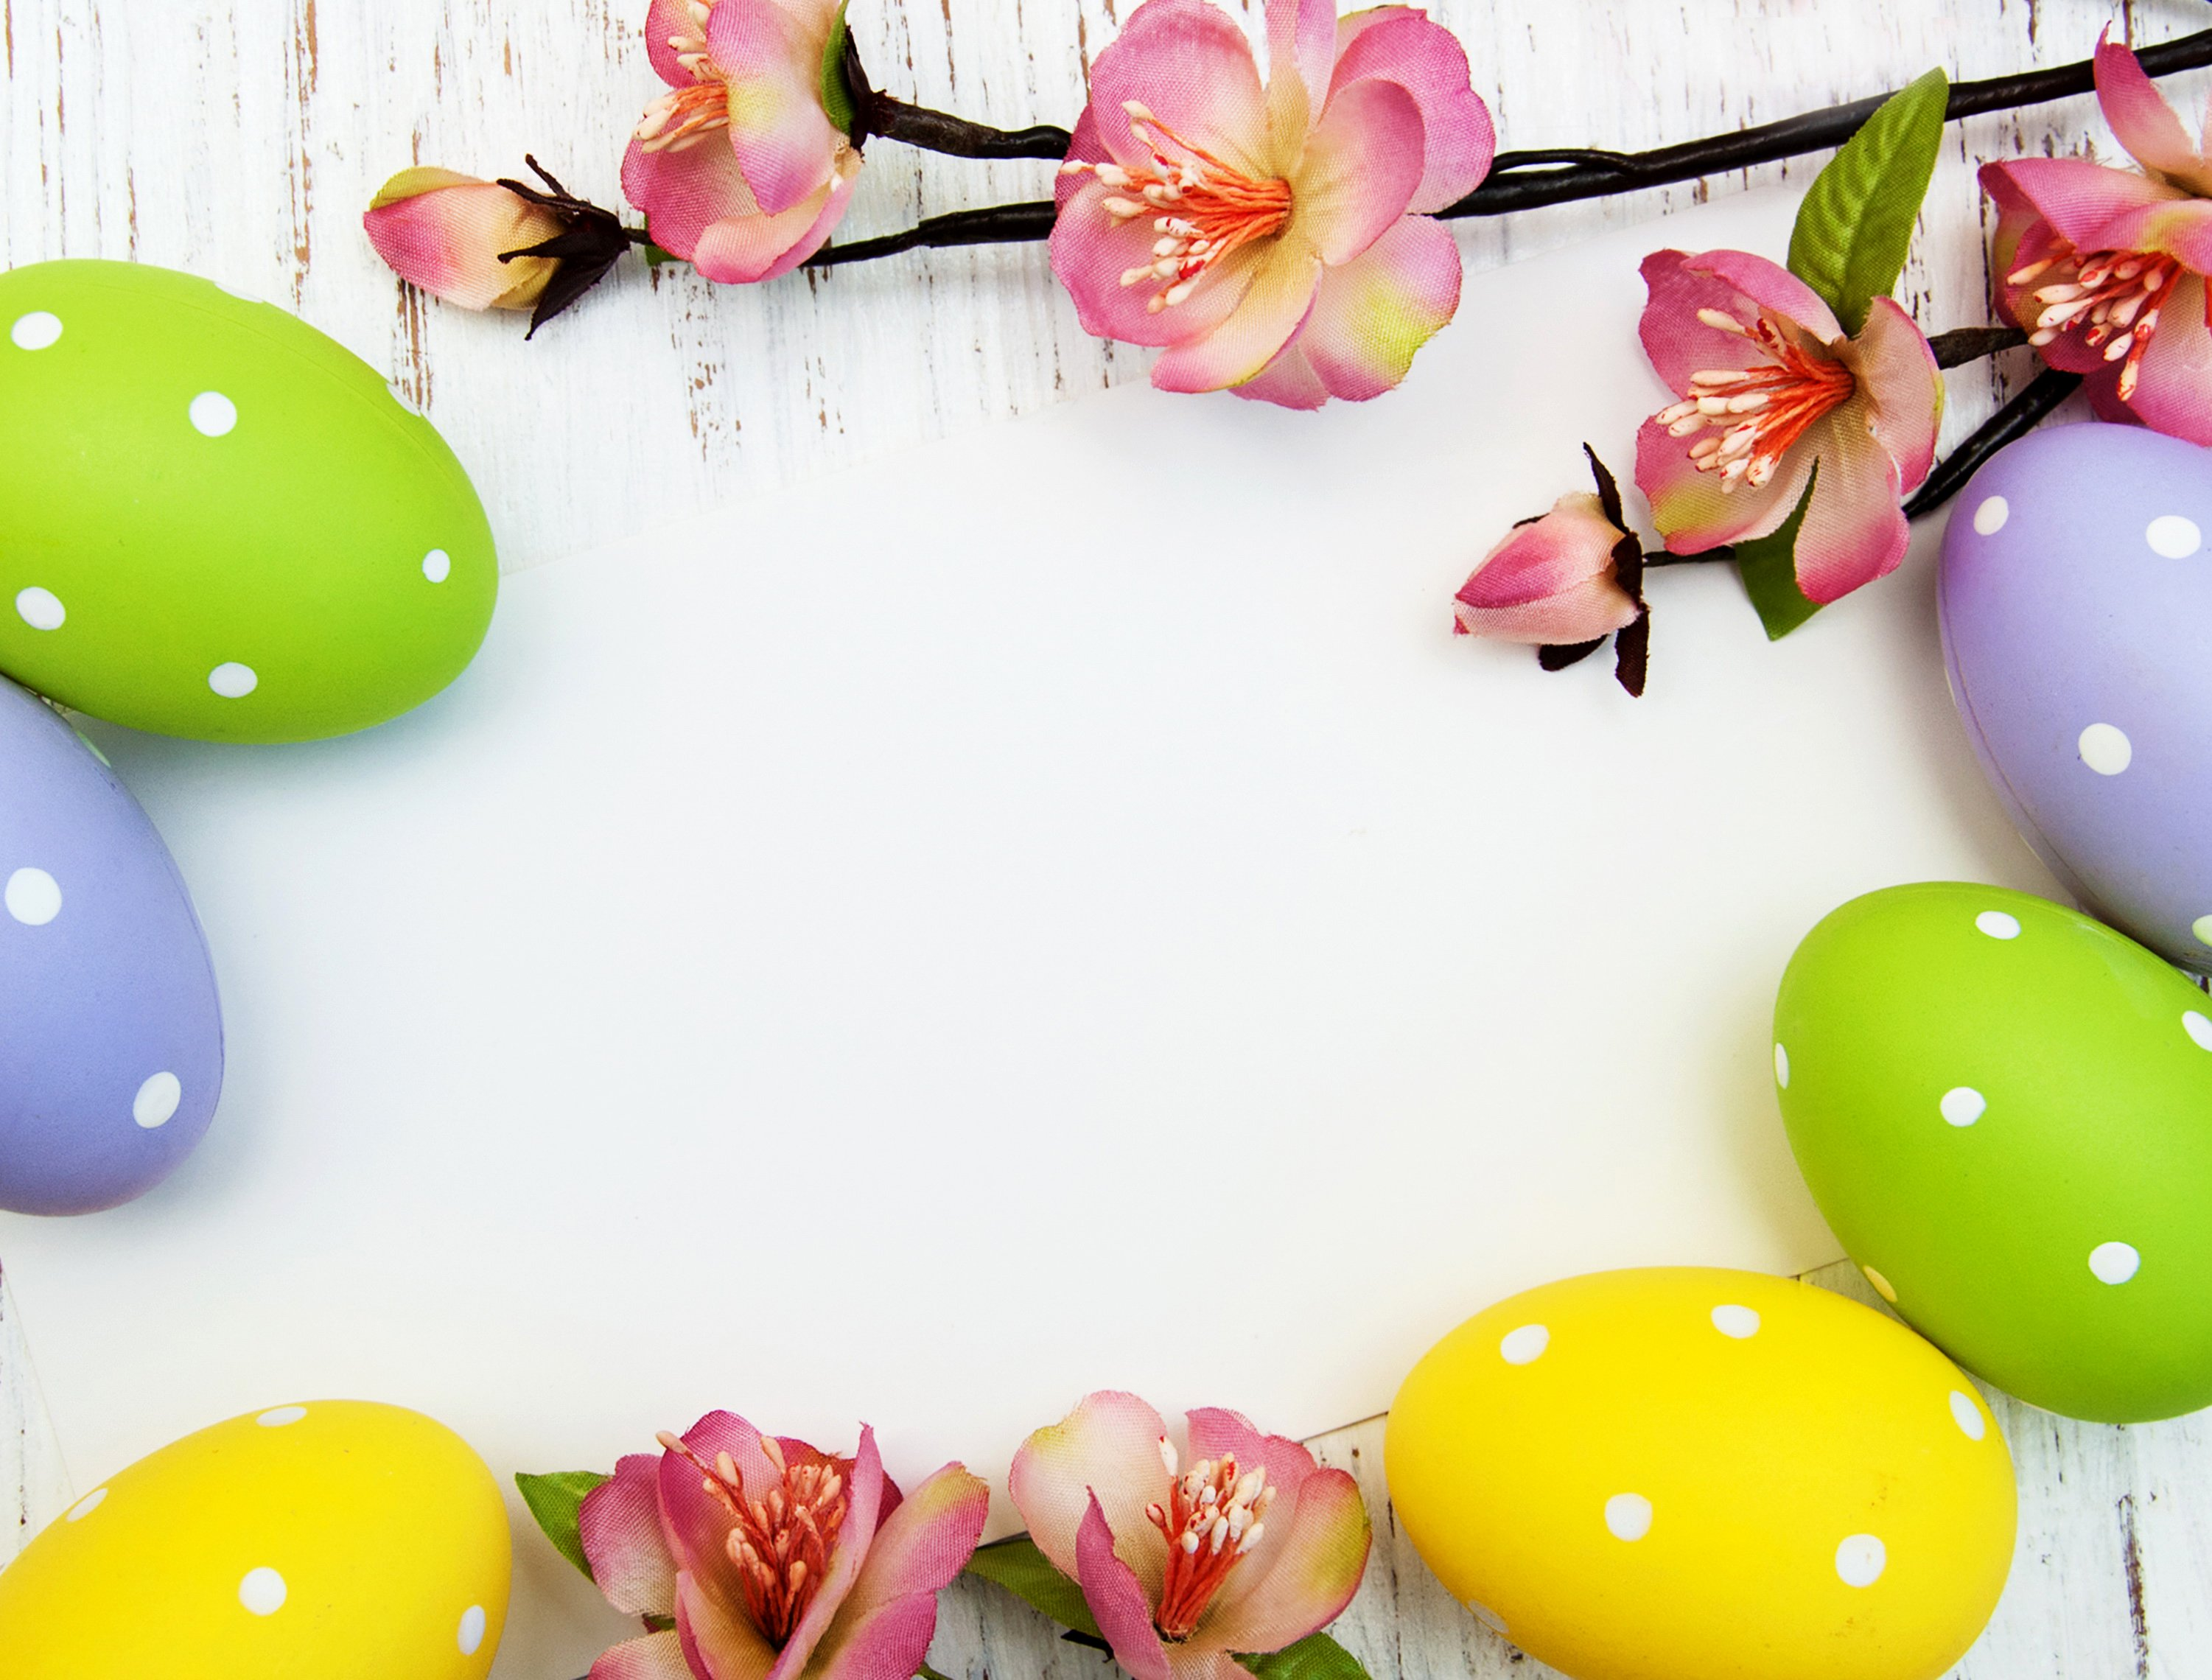 Easter Backgrounds download 3002x2280